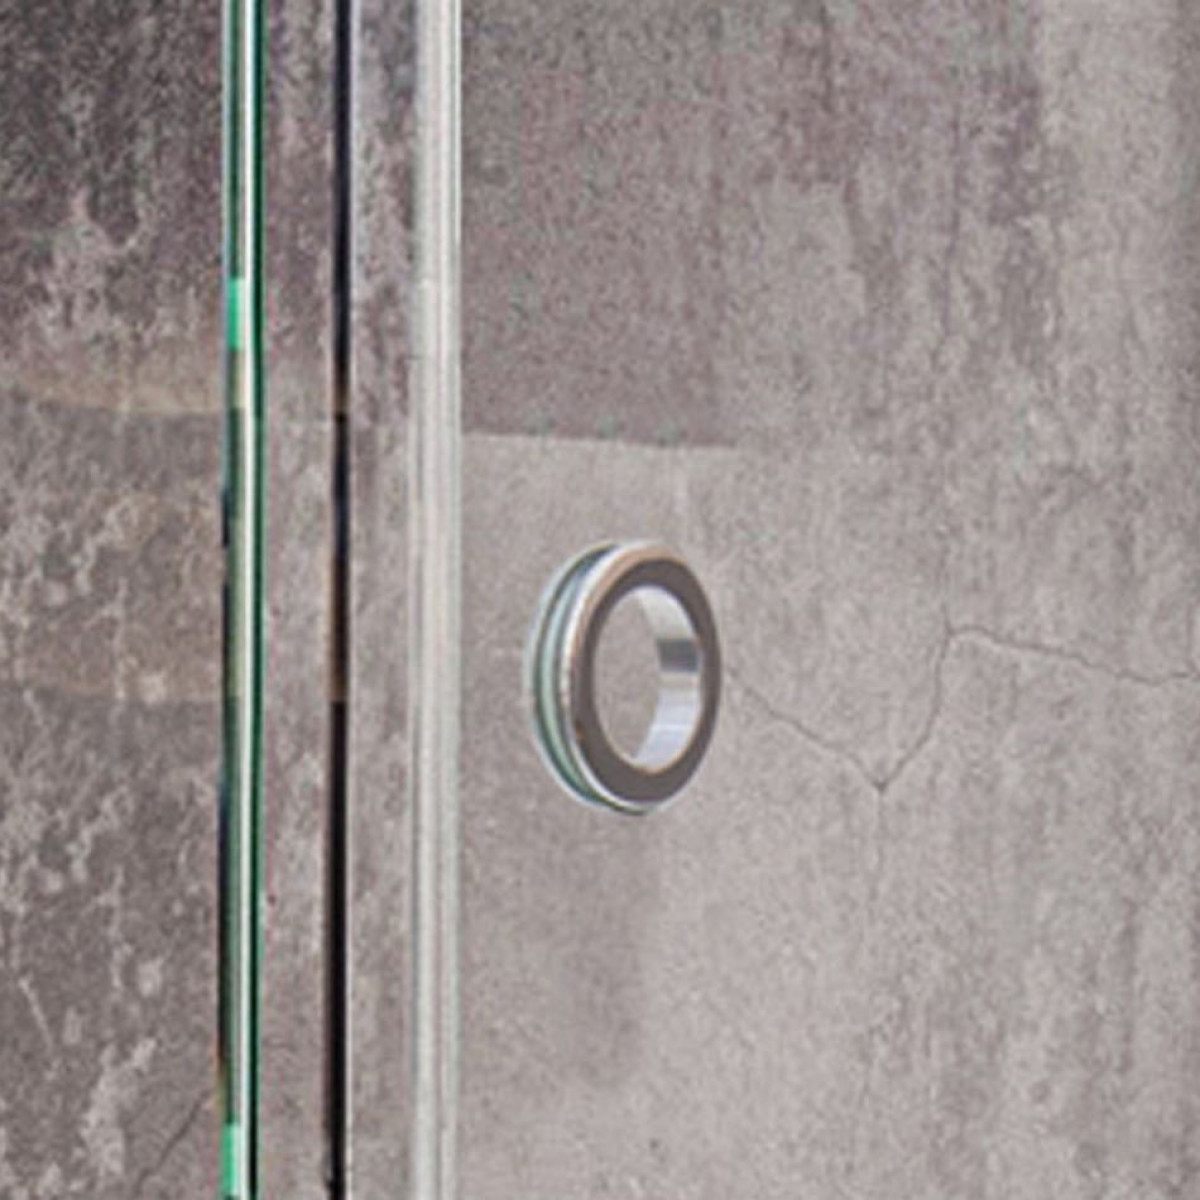 Roman Decem Sliding Door 1700 Alcove Fitting With Finger